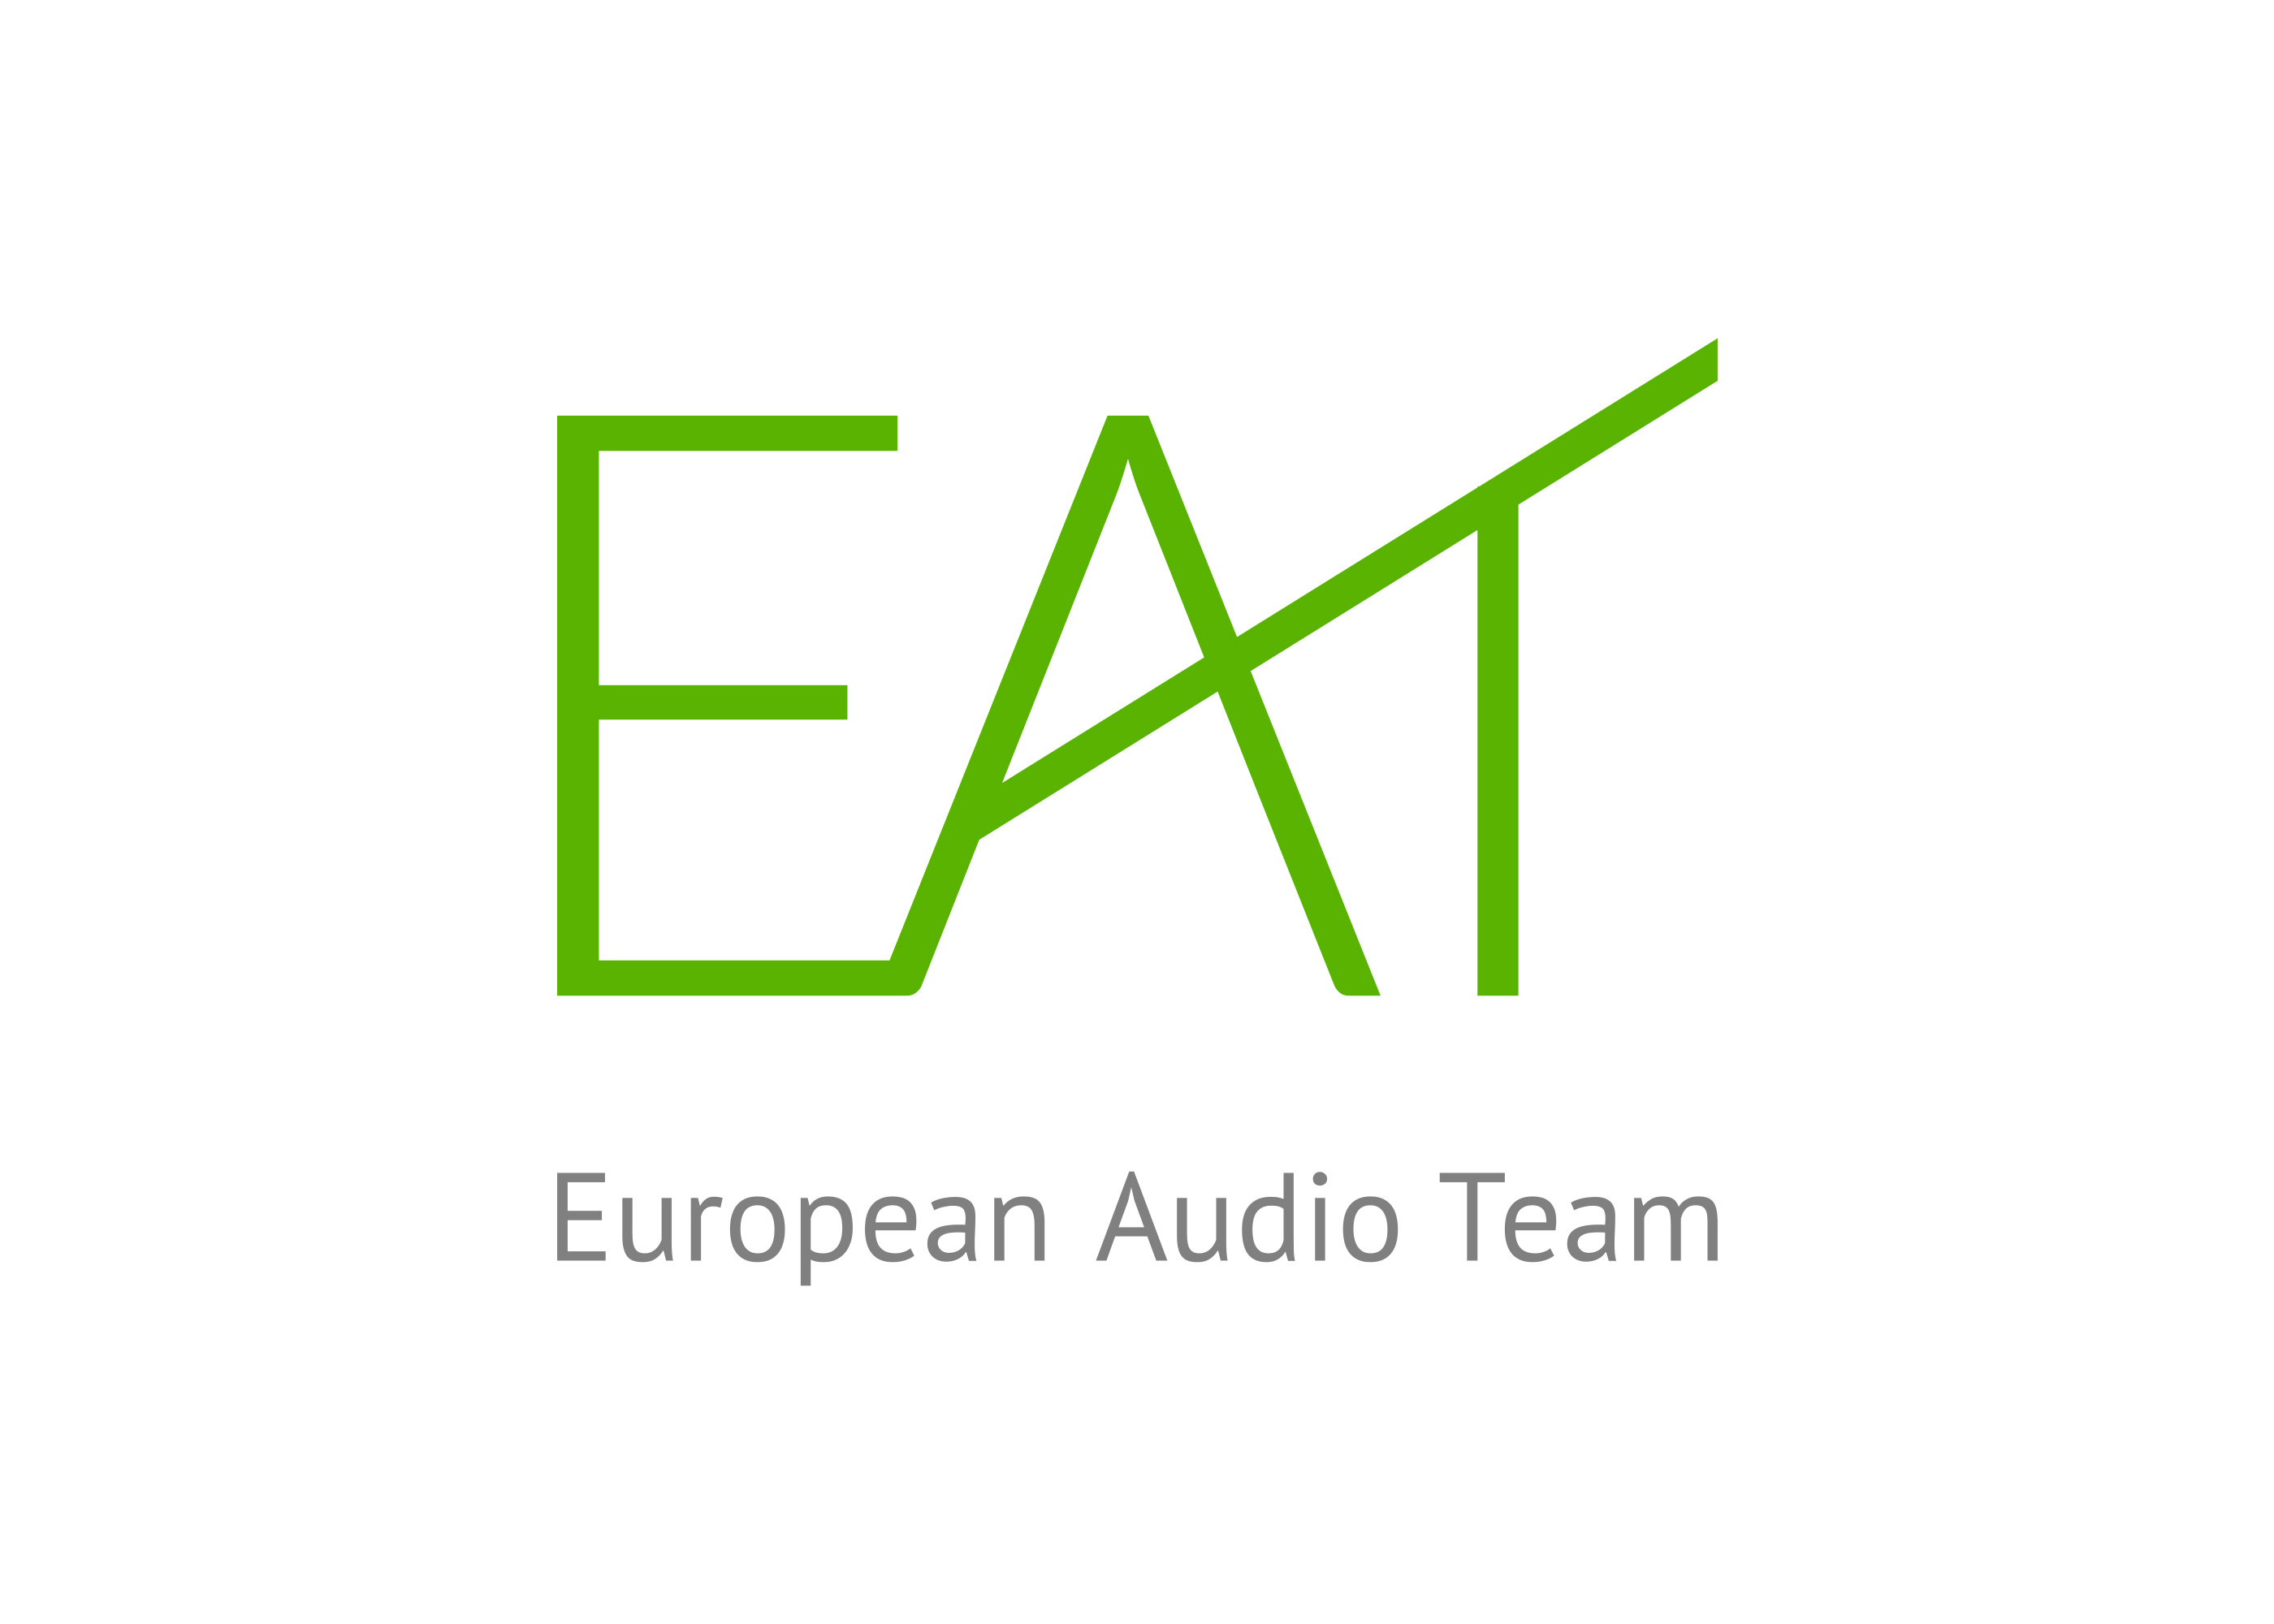 European Audio Team